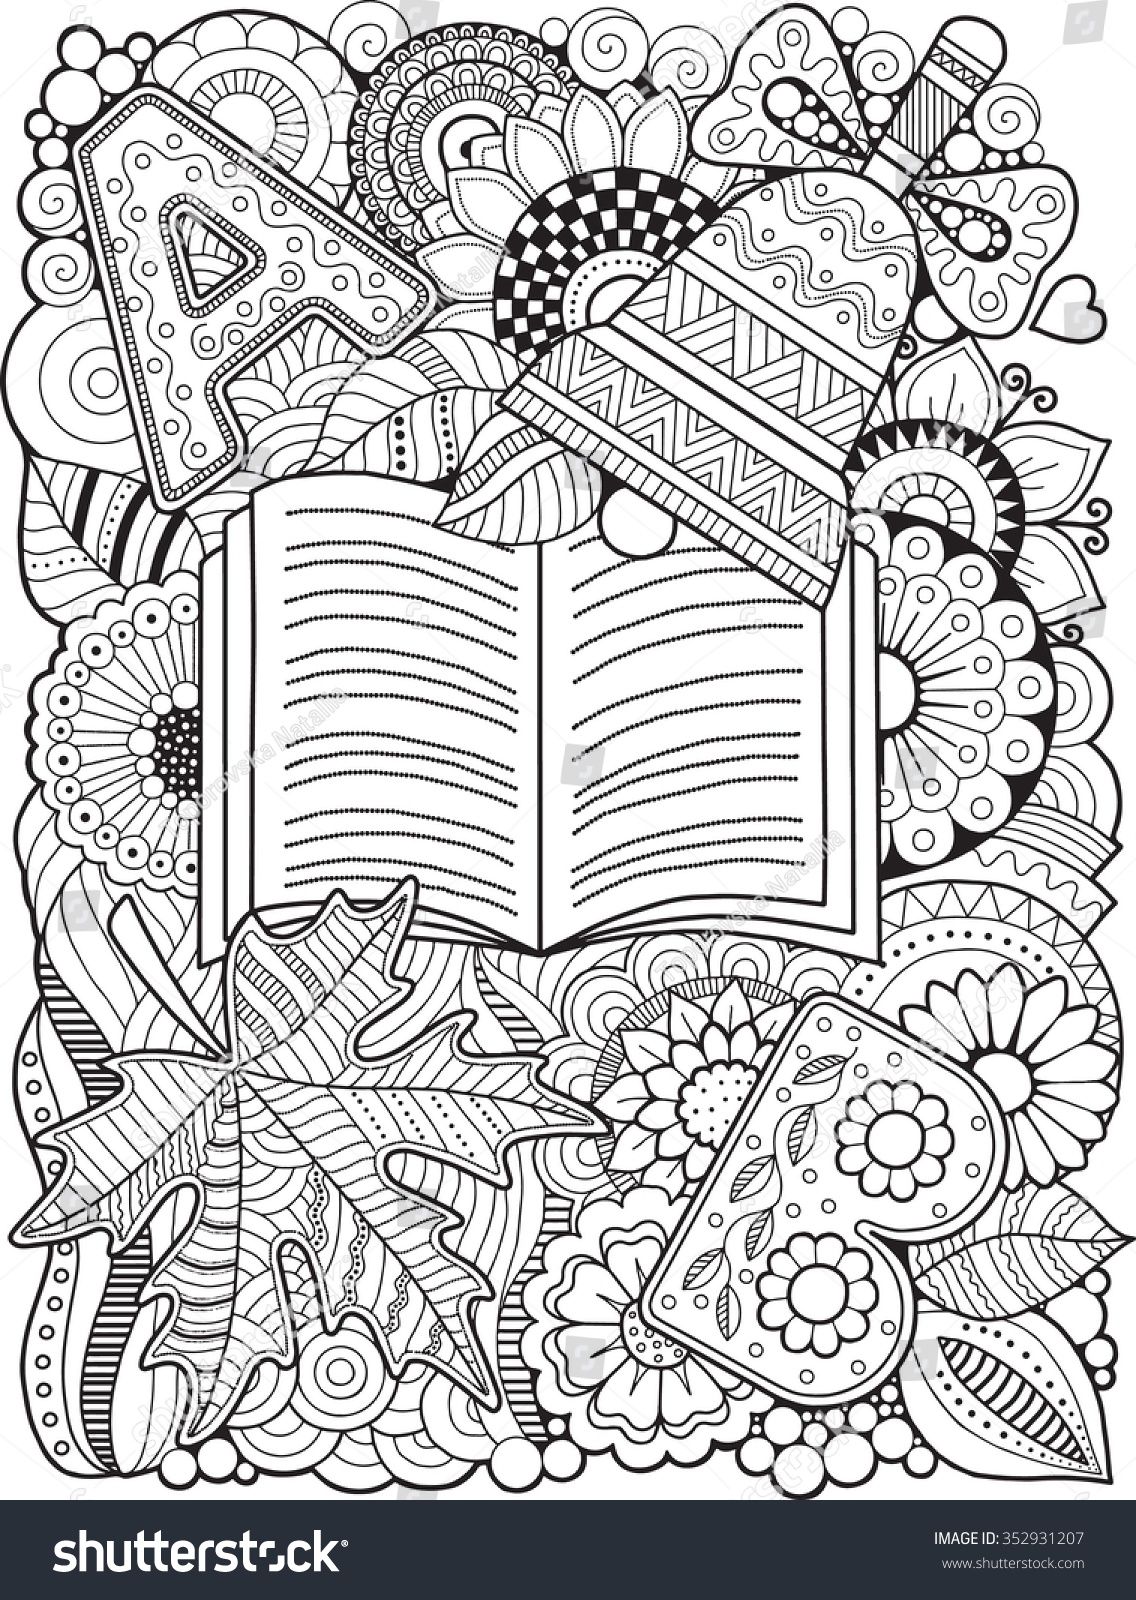 Back School Coloring Book Adult Stock Vector 352931207